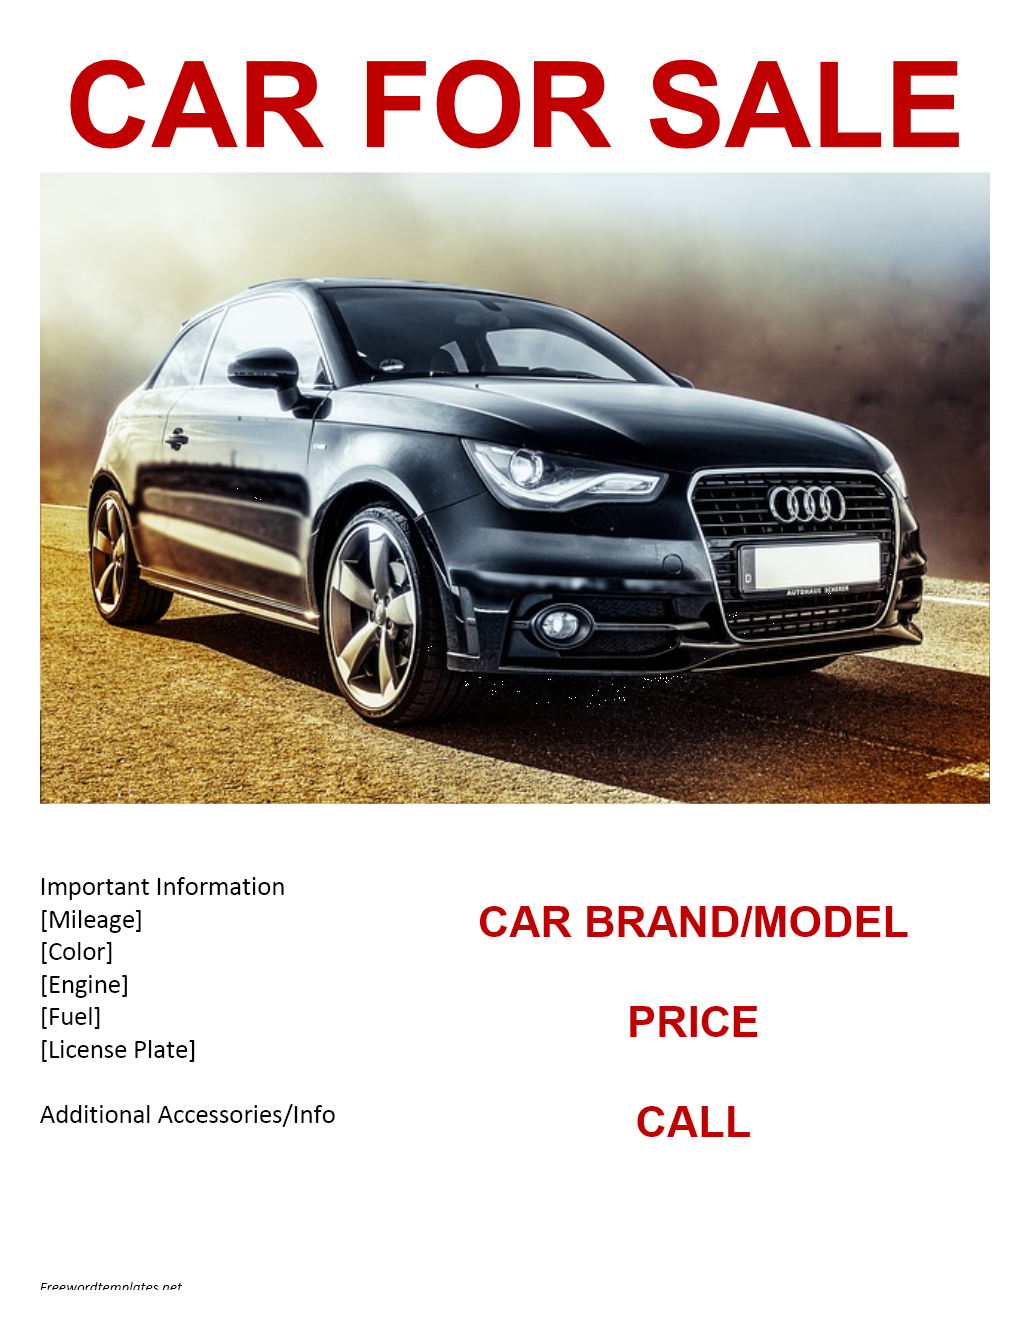 34 Blank Car For Sale Flyer Template PSD File with Car For Sale Flyer Template